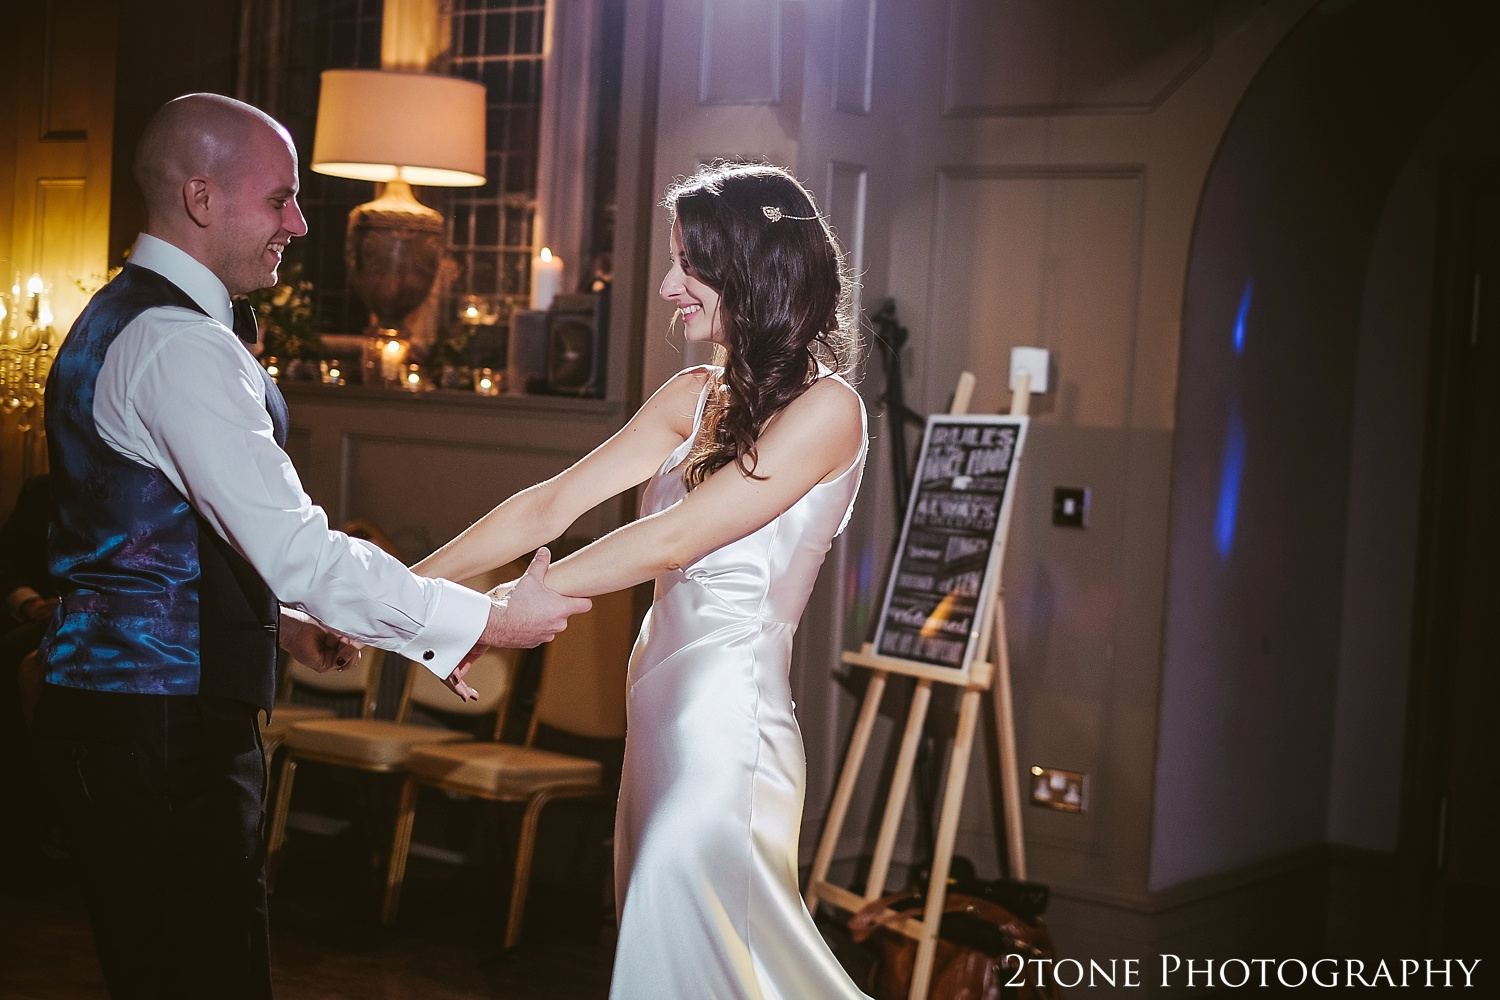 Wedding first dance at Ellingham Hall. Winter wedding photography by www.2tonephotography.co.uk